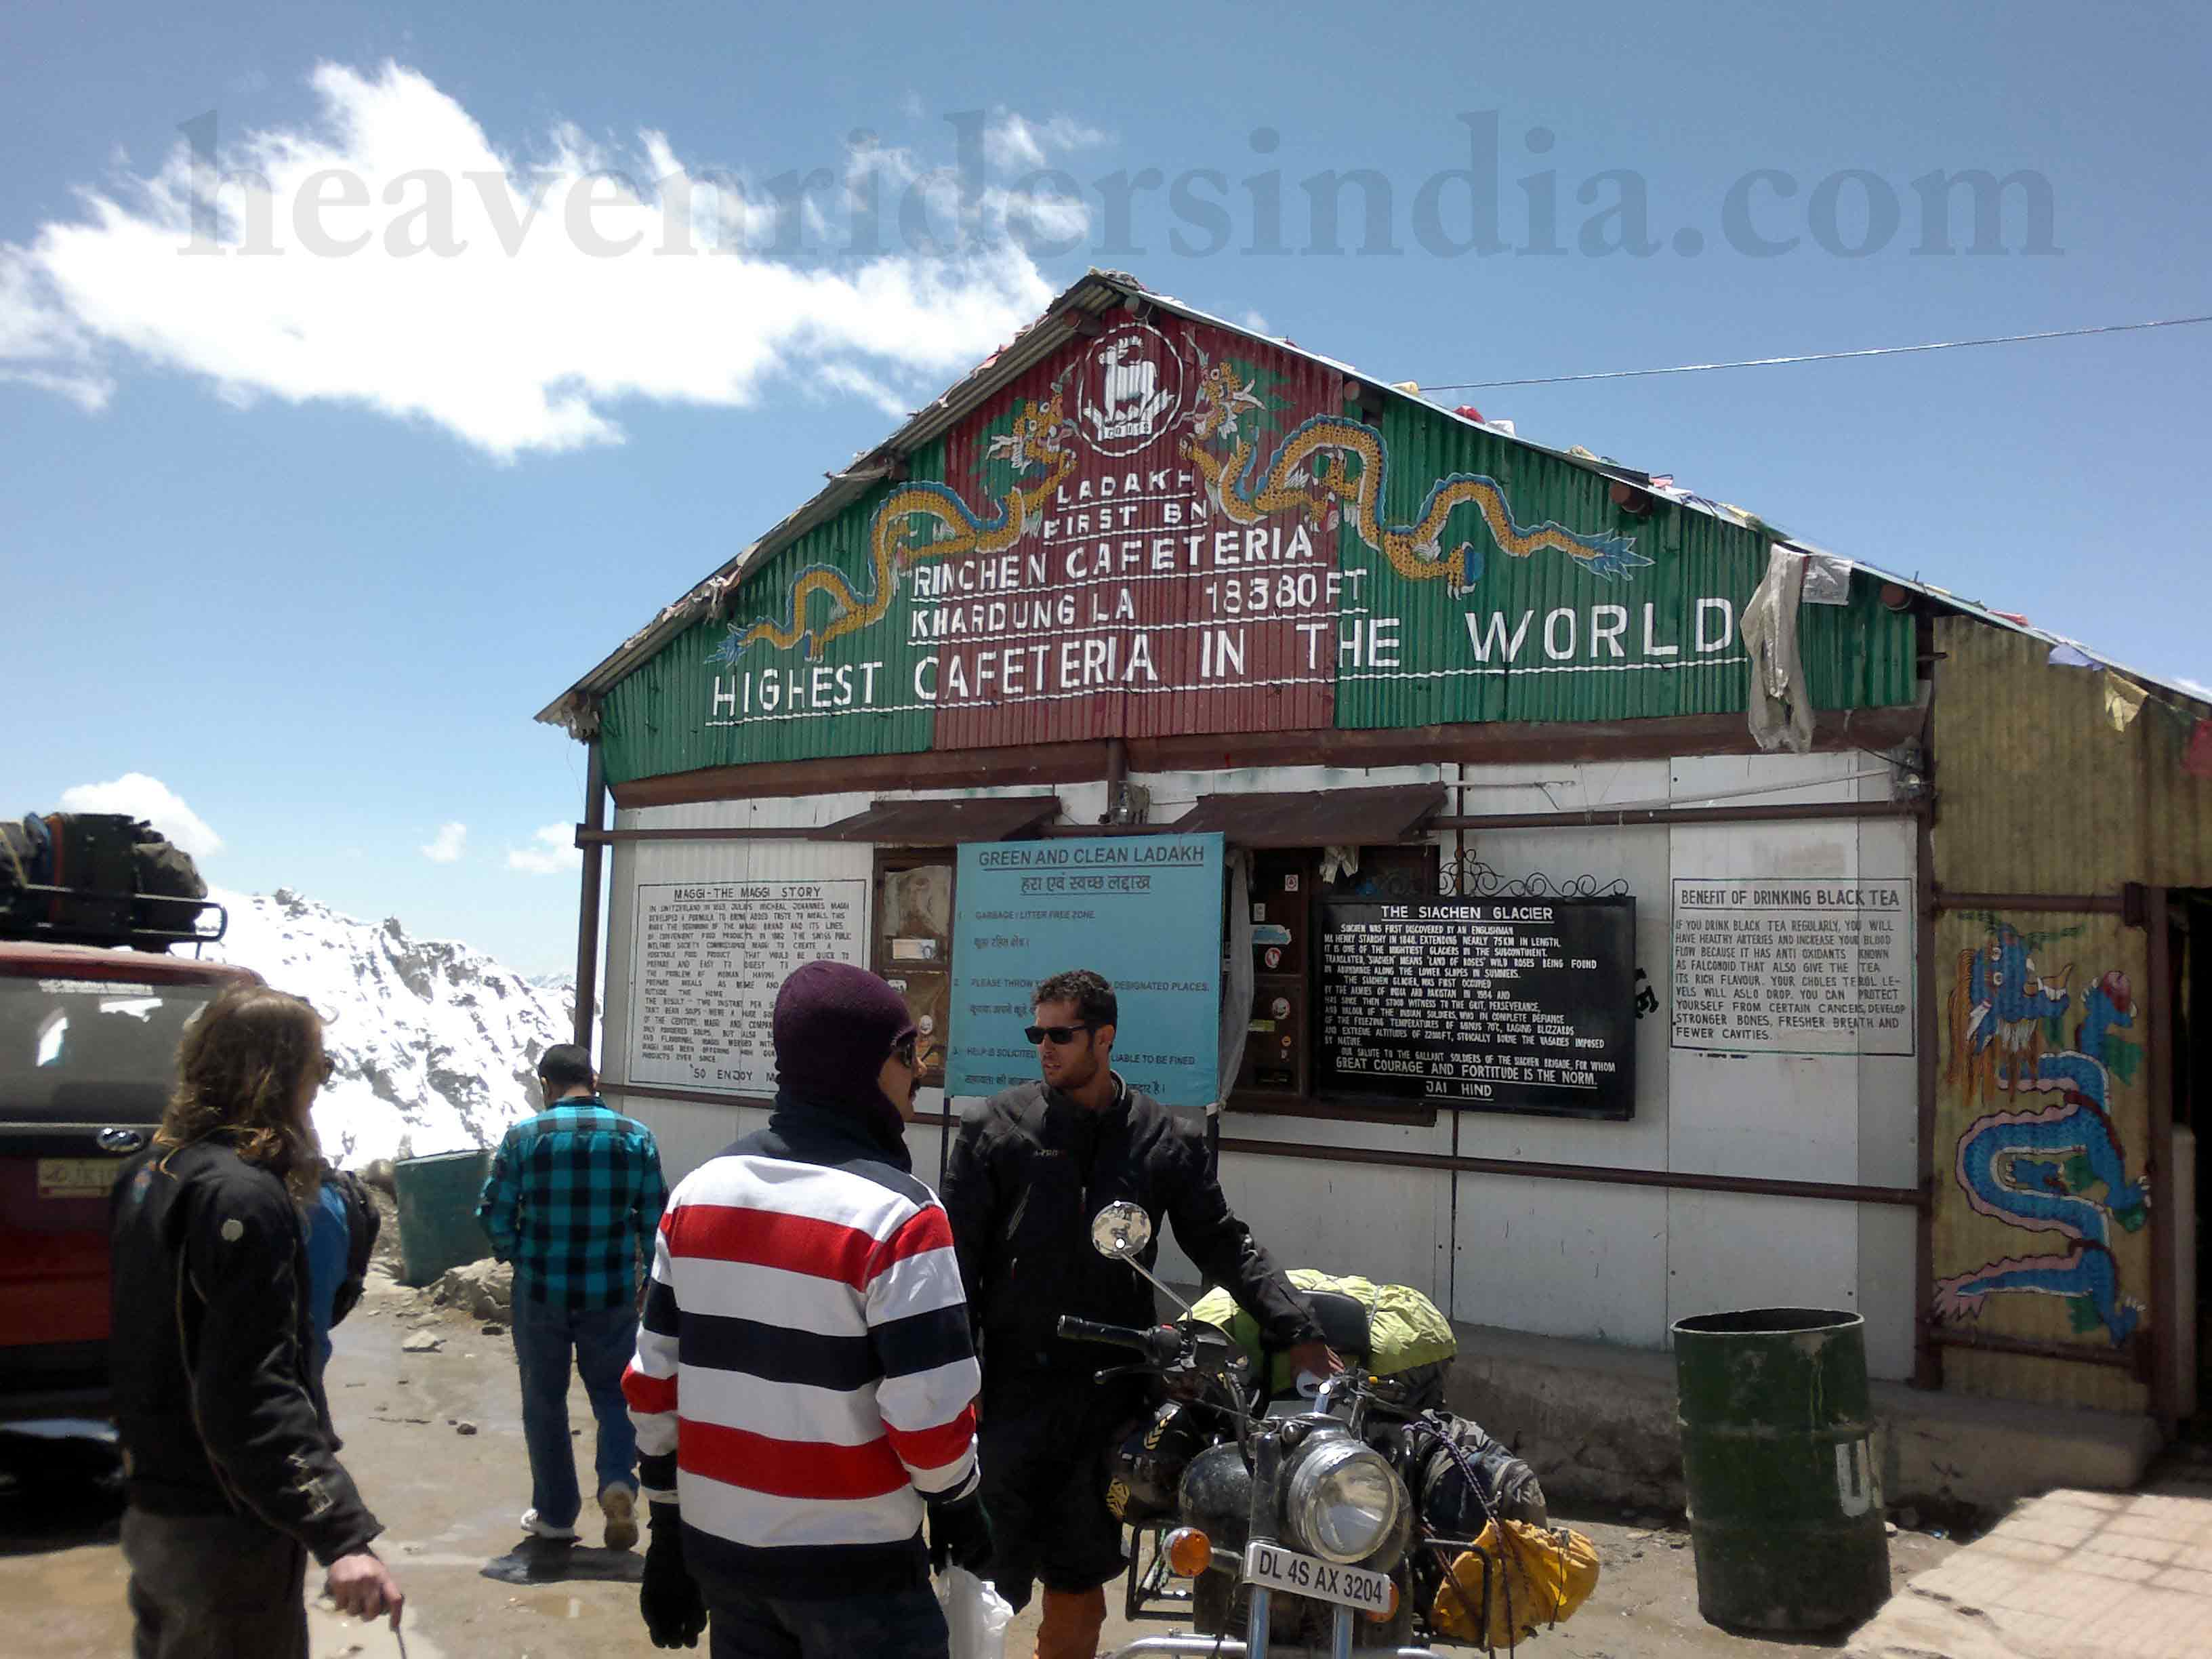 Riders at highest cafeteria at Khardung la top during Road trip to Leh-Ladakh